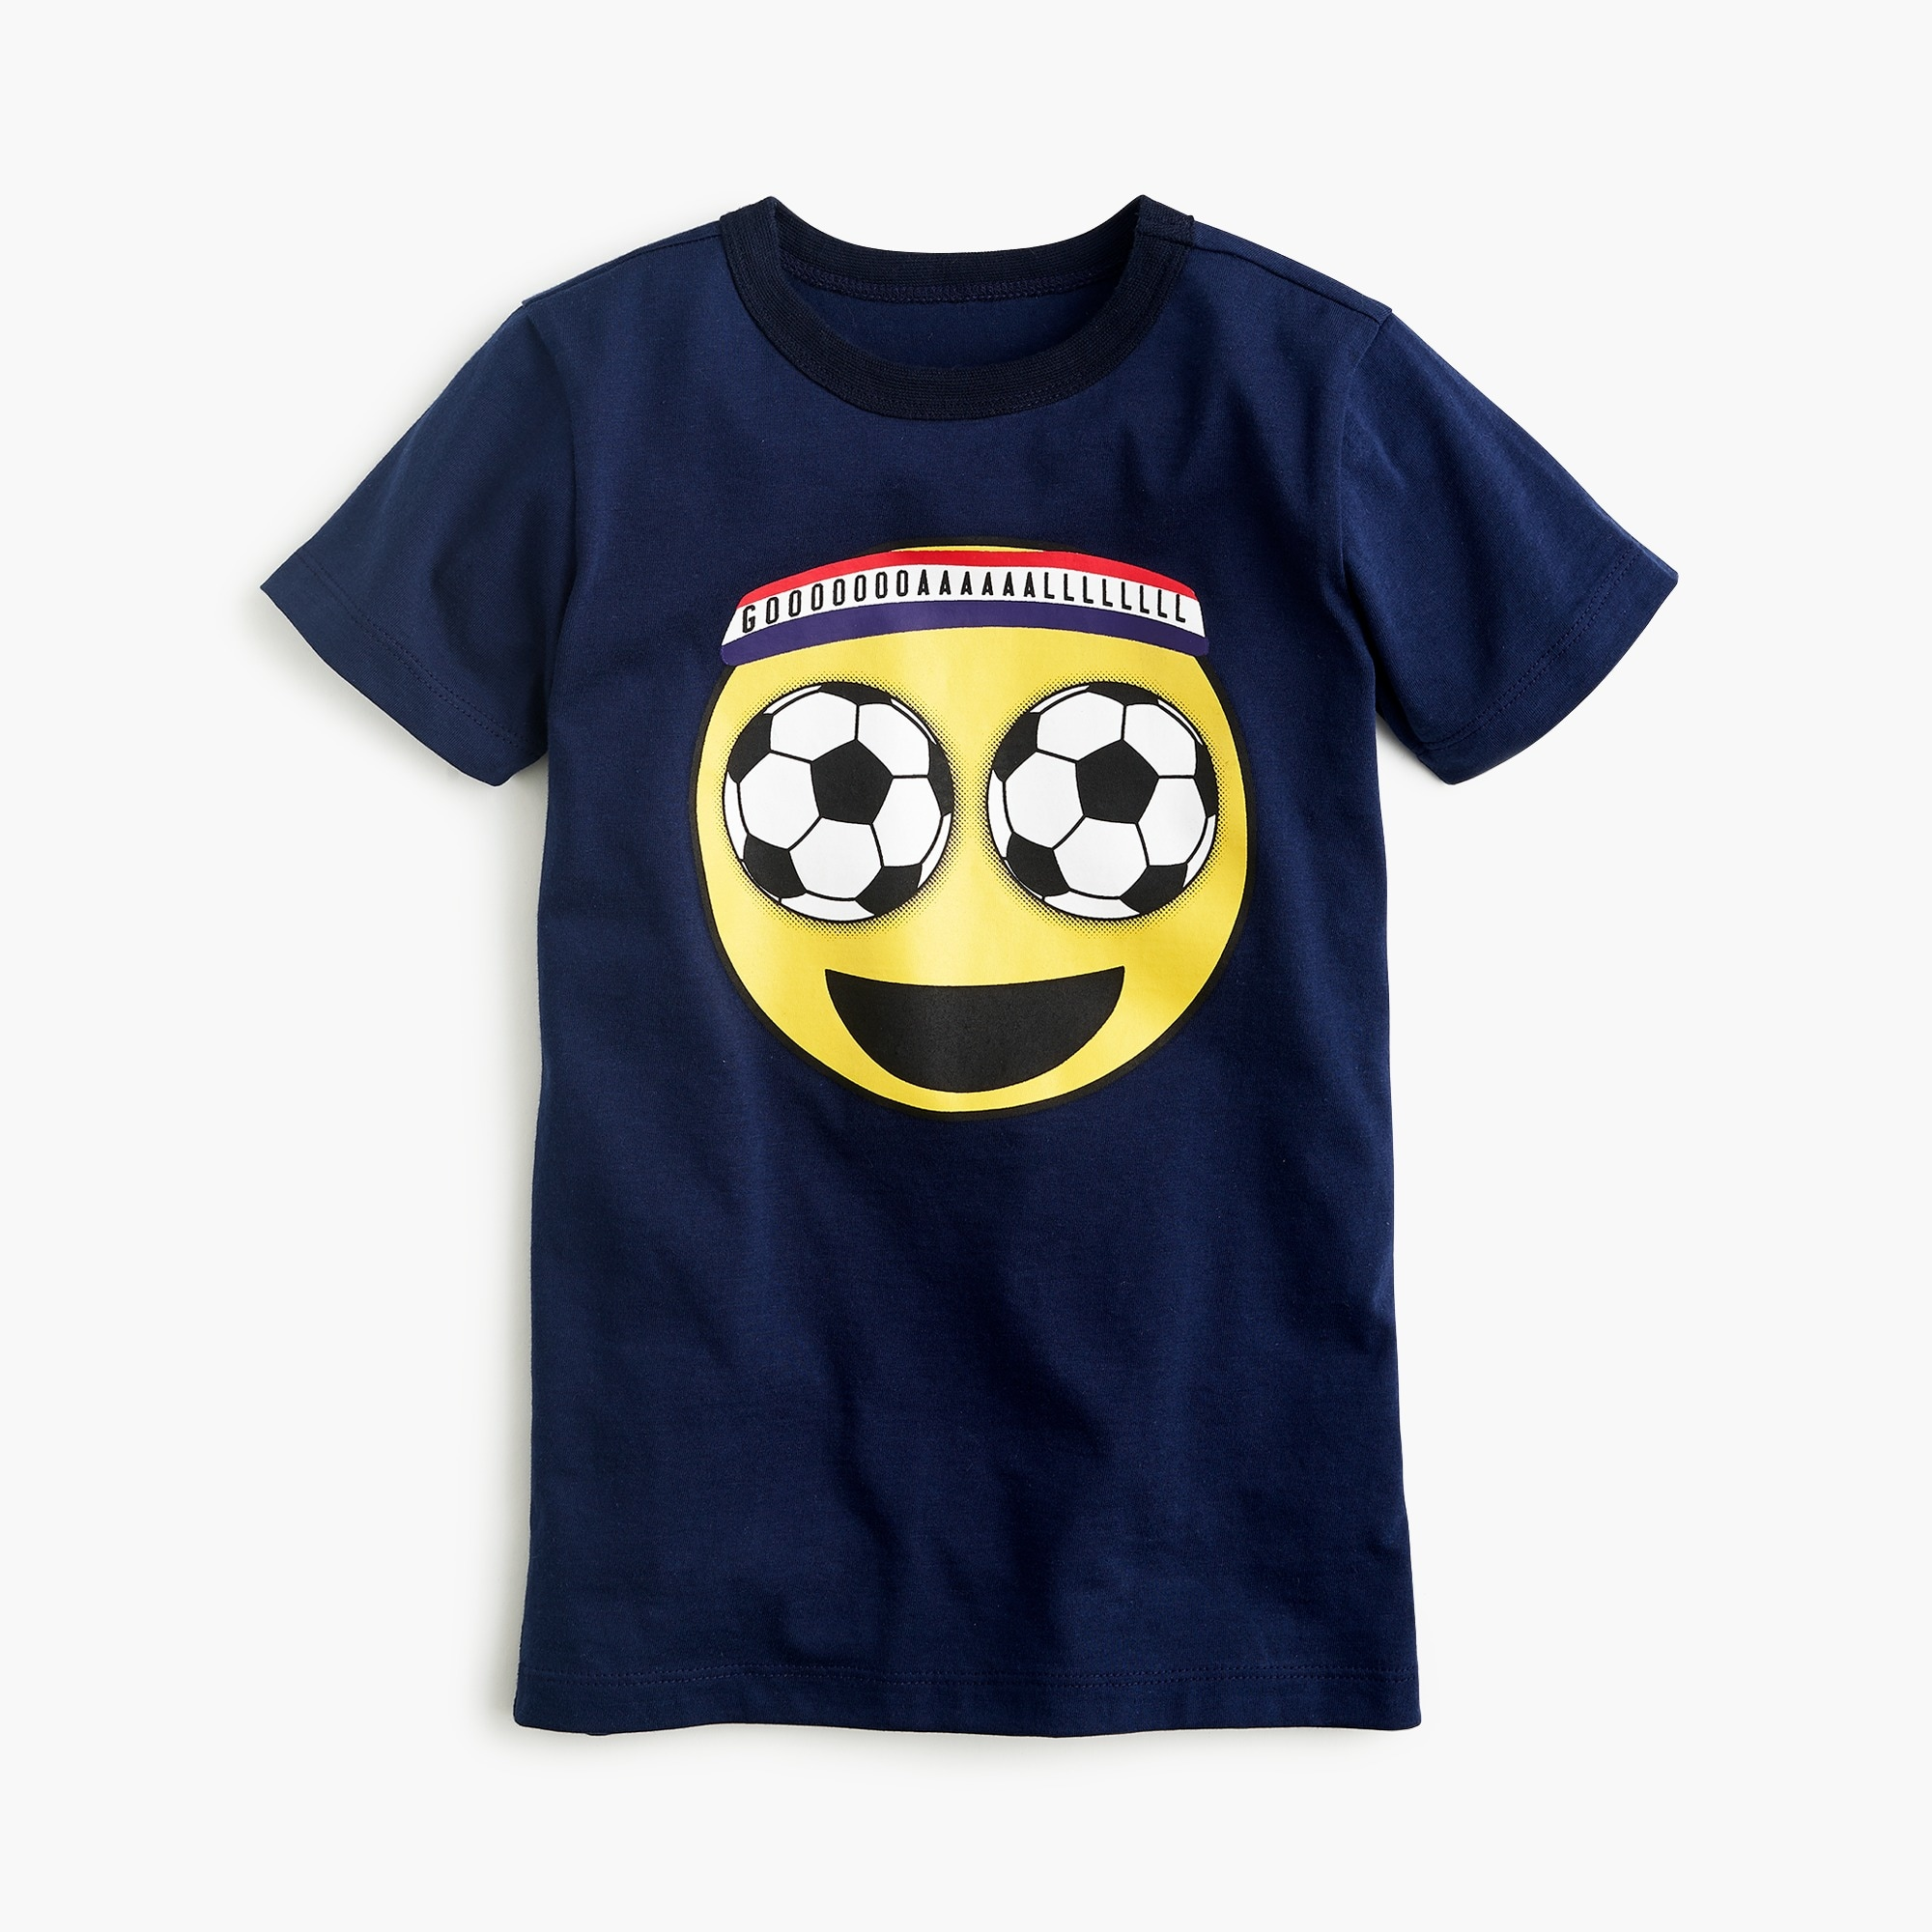 Boys' soccer-eyes emoji T-shirt boy new arrivals c